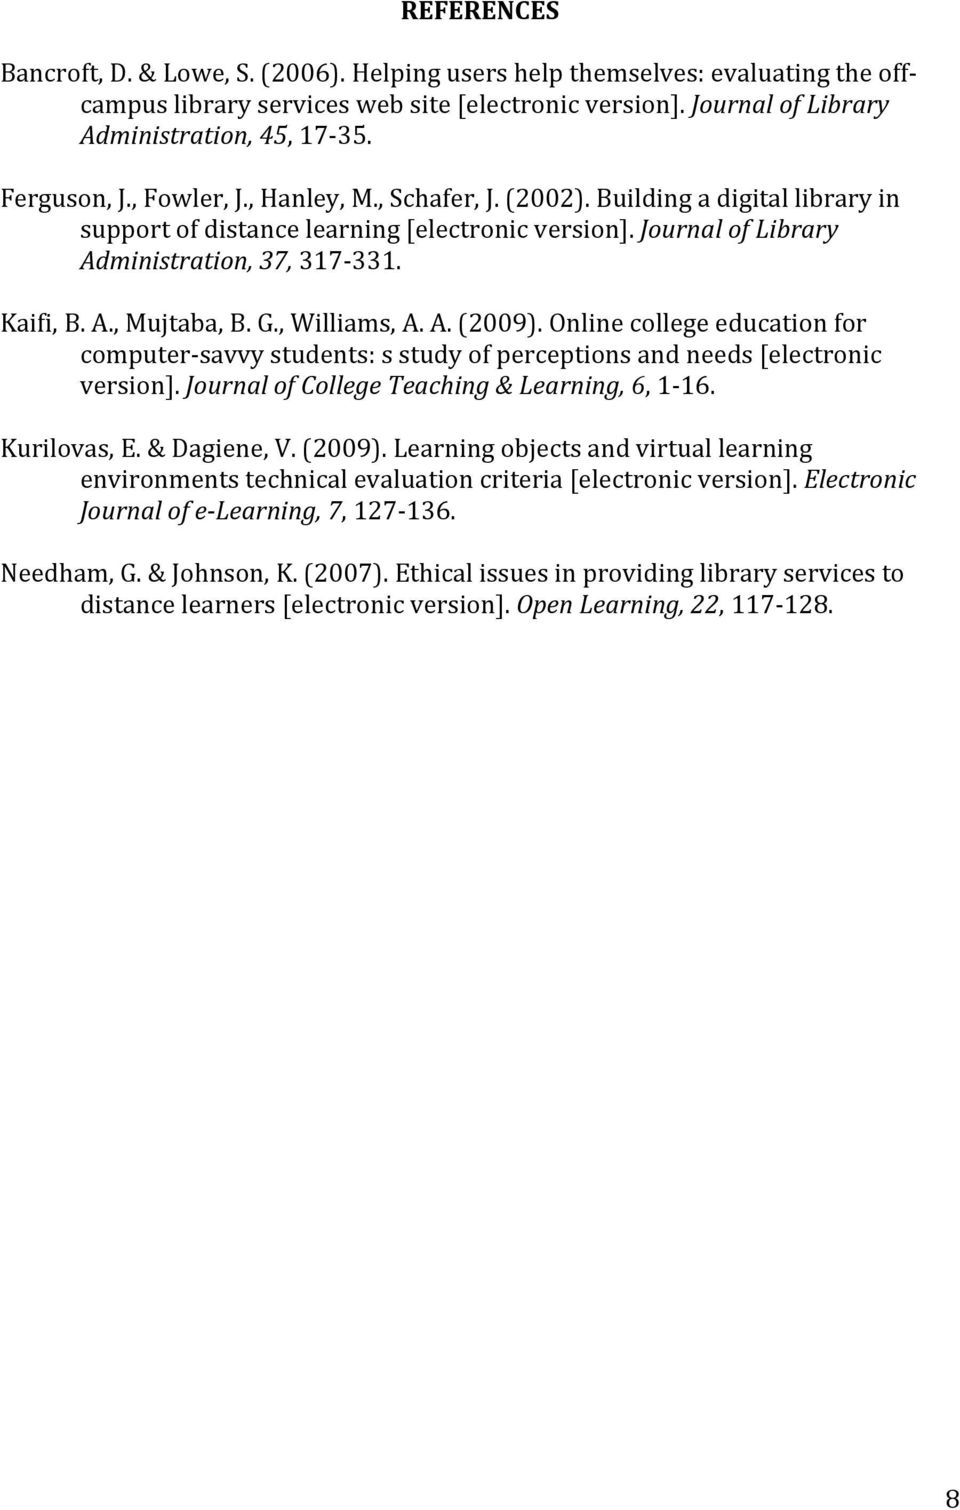 G., Williams, A. A. (2009). Online college education for computer- savvy students: s study of perceptions and needs [electronic version]. Journal of College Teaching & Learning, 6, 1-16. Kurilovas, E.